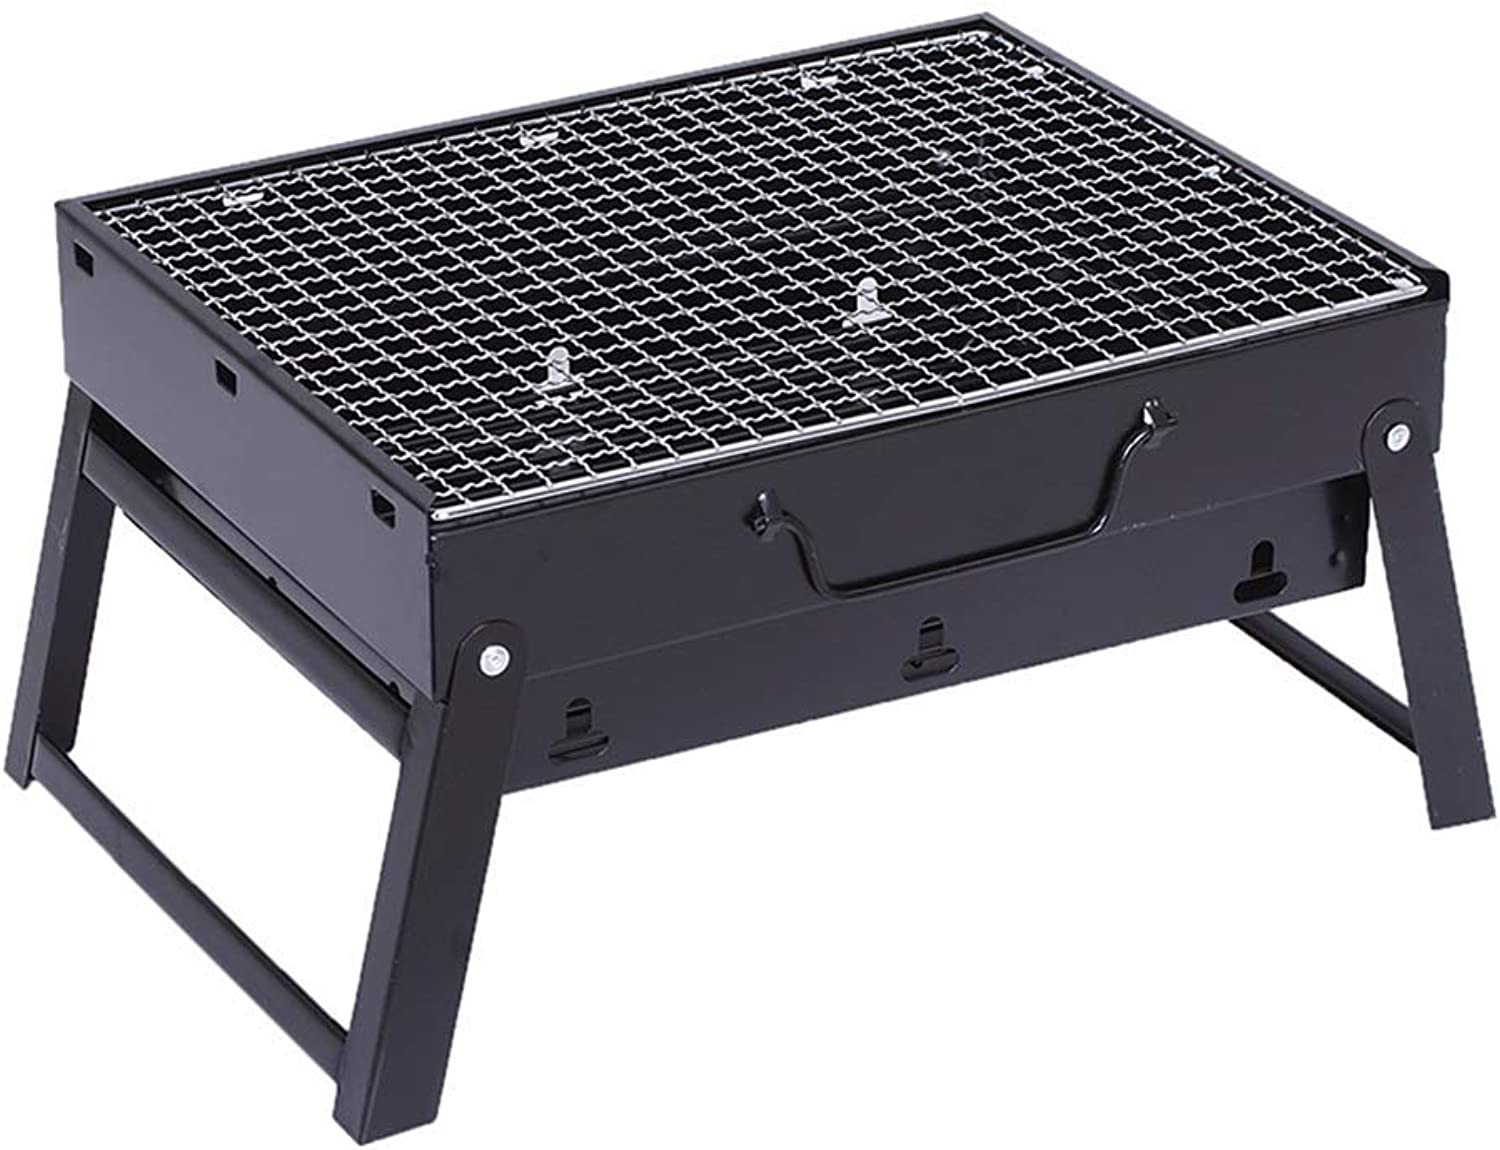 BBQ Supplies Barbecue Portable Barbecue Gril, Folding Stainless Steel Charcoal Barbecue Table Camping Outdoor Garden Grill BBQ Utensil